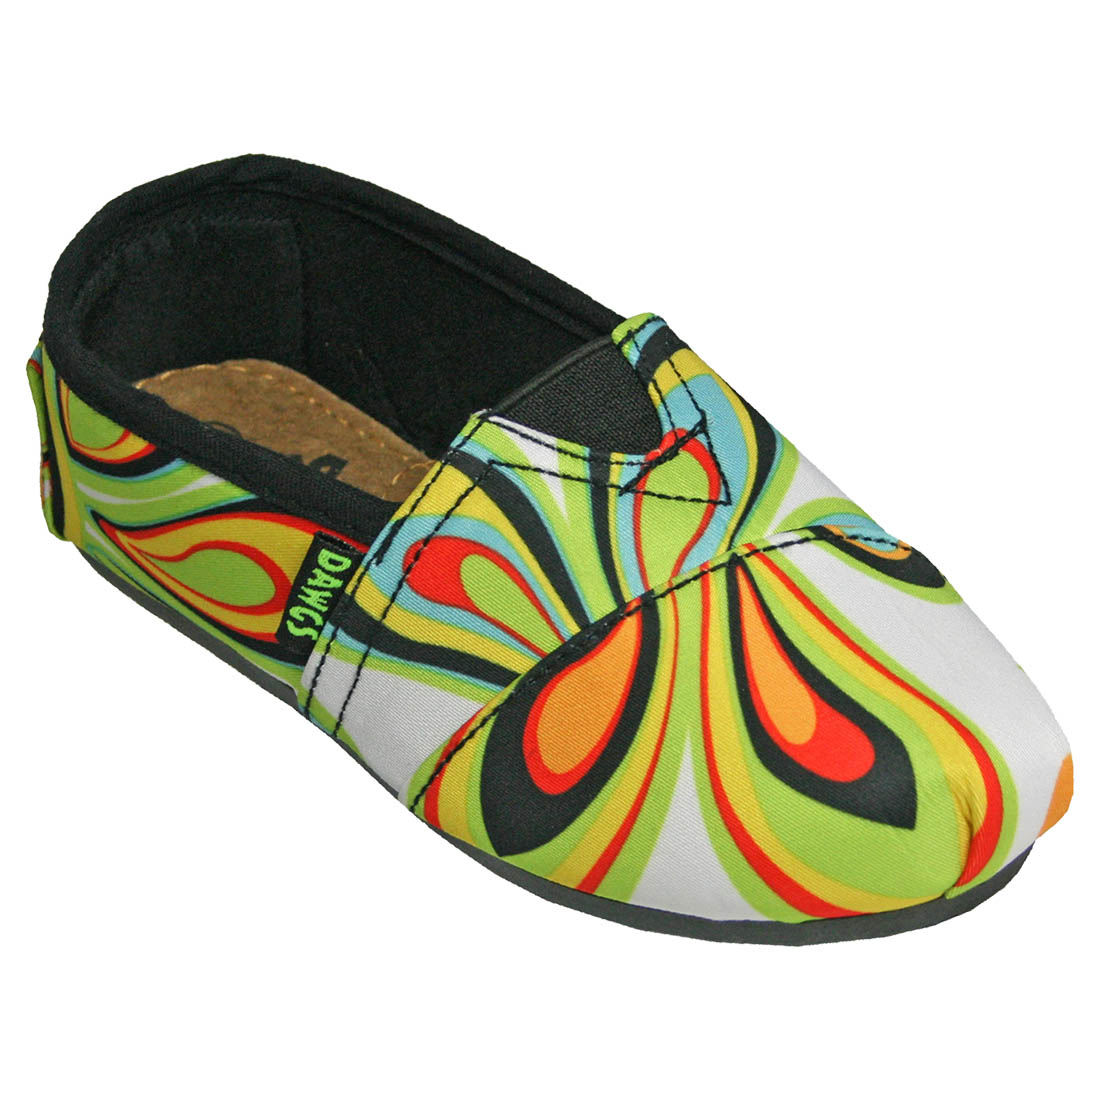 Toddlers' Loudmouth Loafers